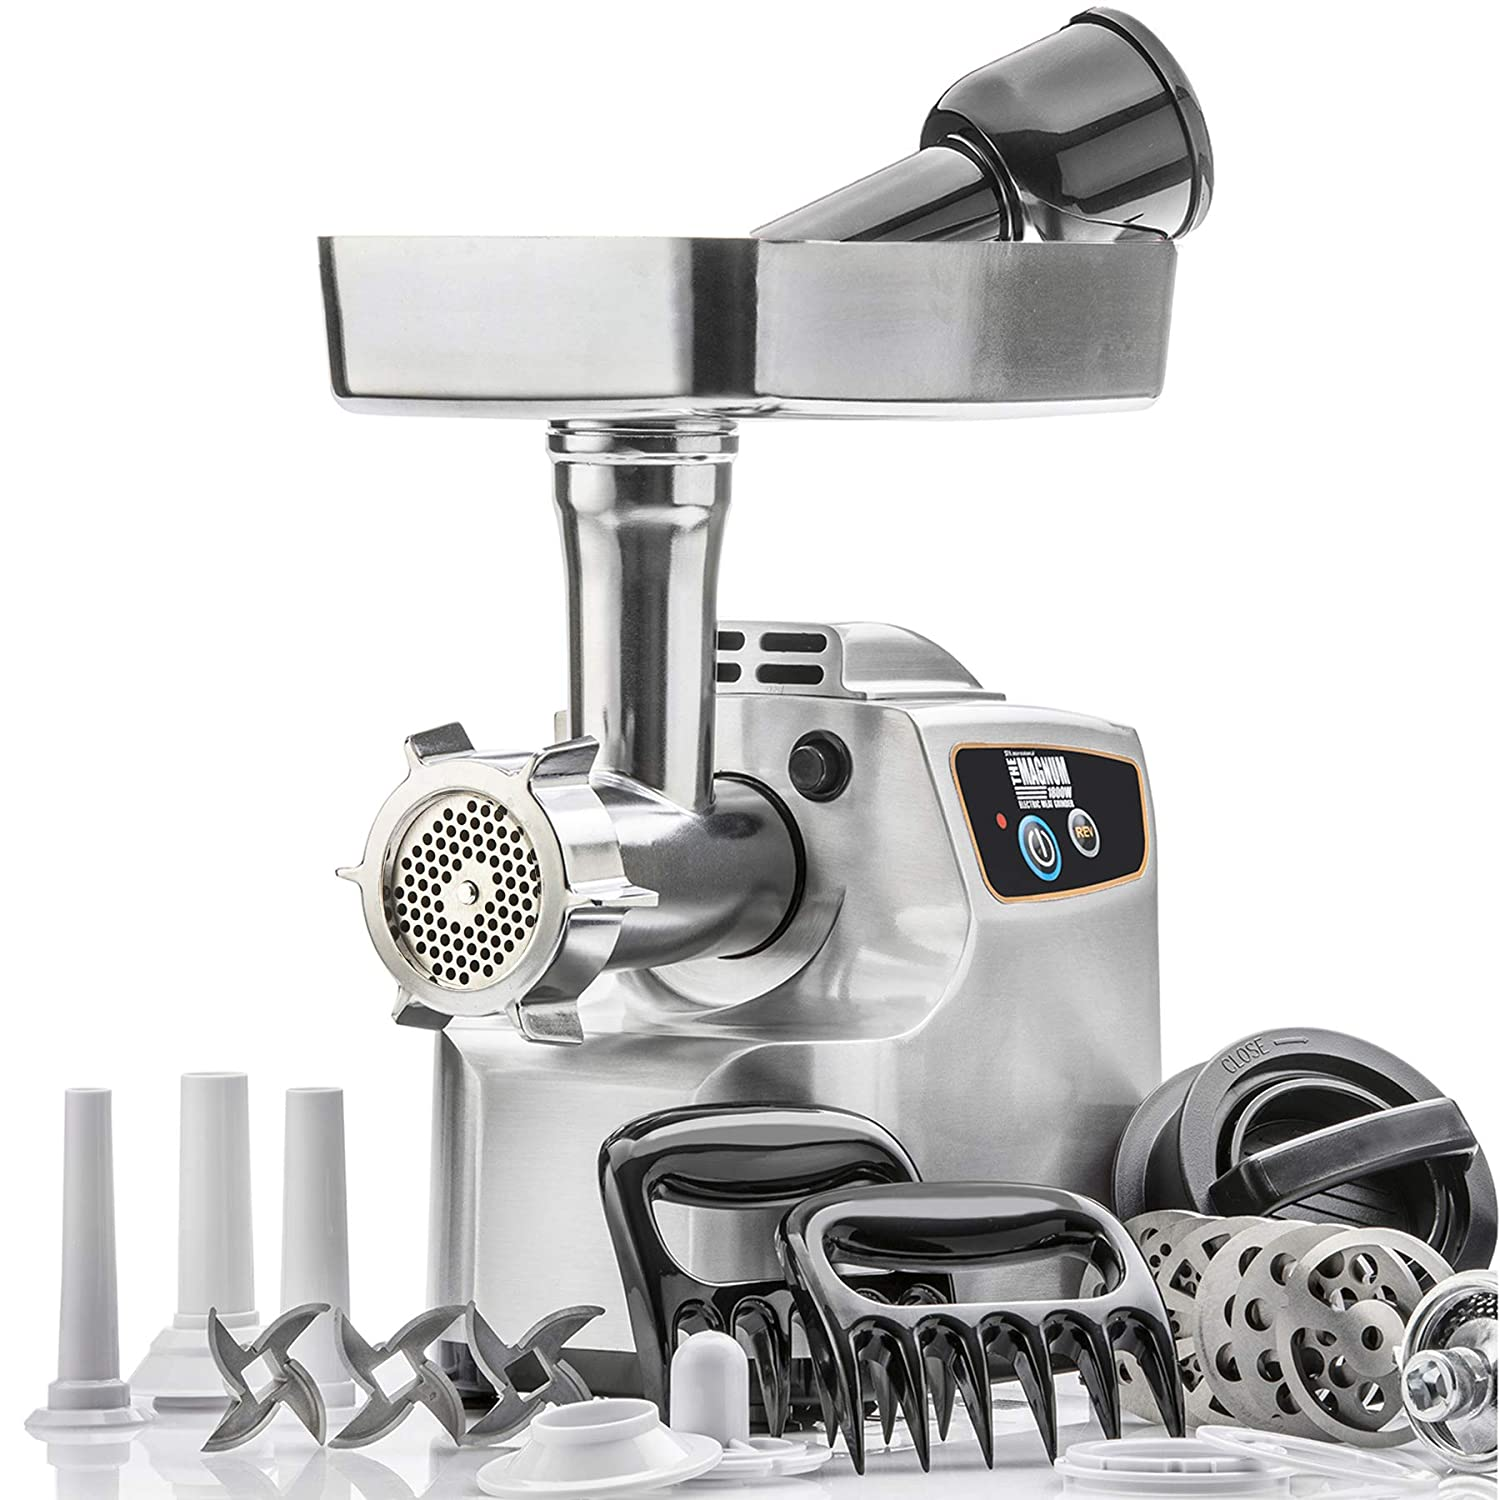 STX International Gen 2 -Platinum Edition Magnum 1800W Heavy Duty Electric Meat Grinder – 3 Lb High Capacity Meat Tray, 6 Grinding Plates, 3 S S Blades, 3 Sausage Tubes 1 Kubbe Maker Much More